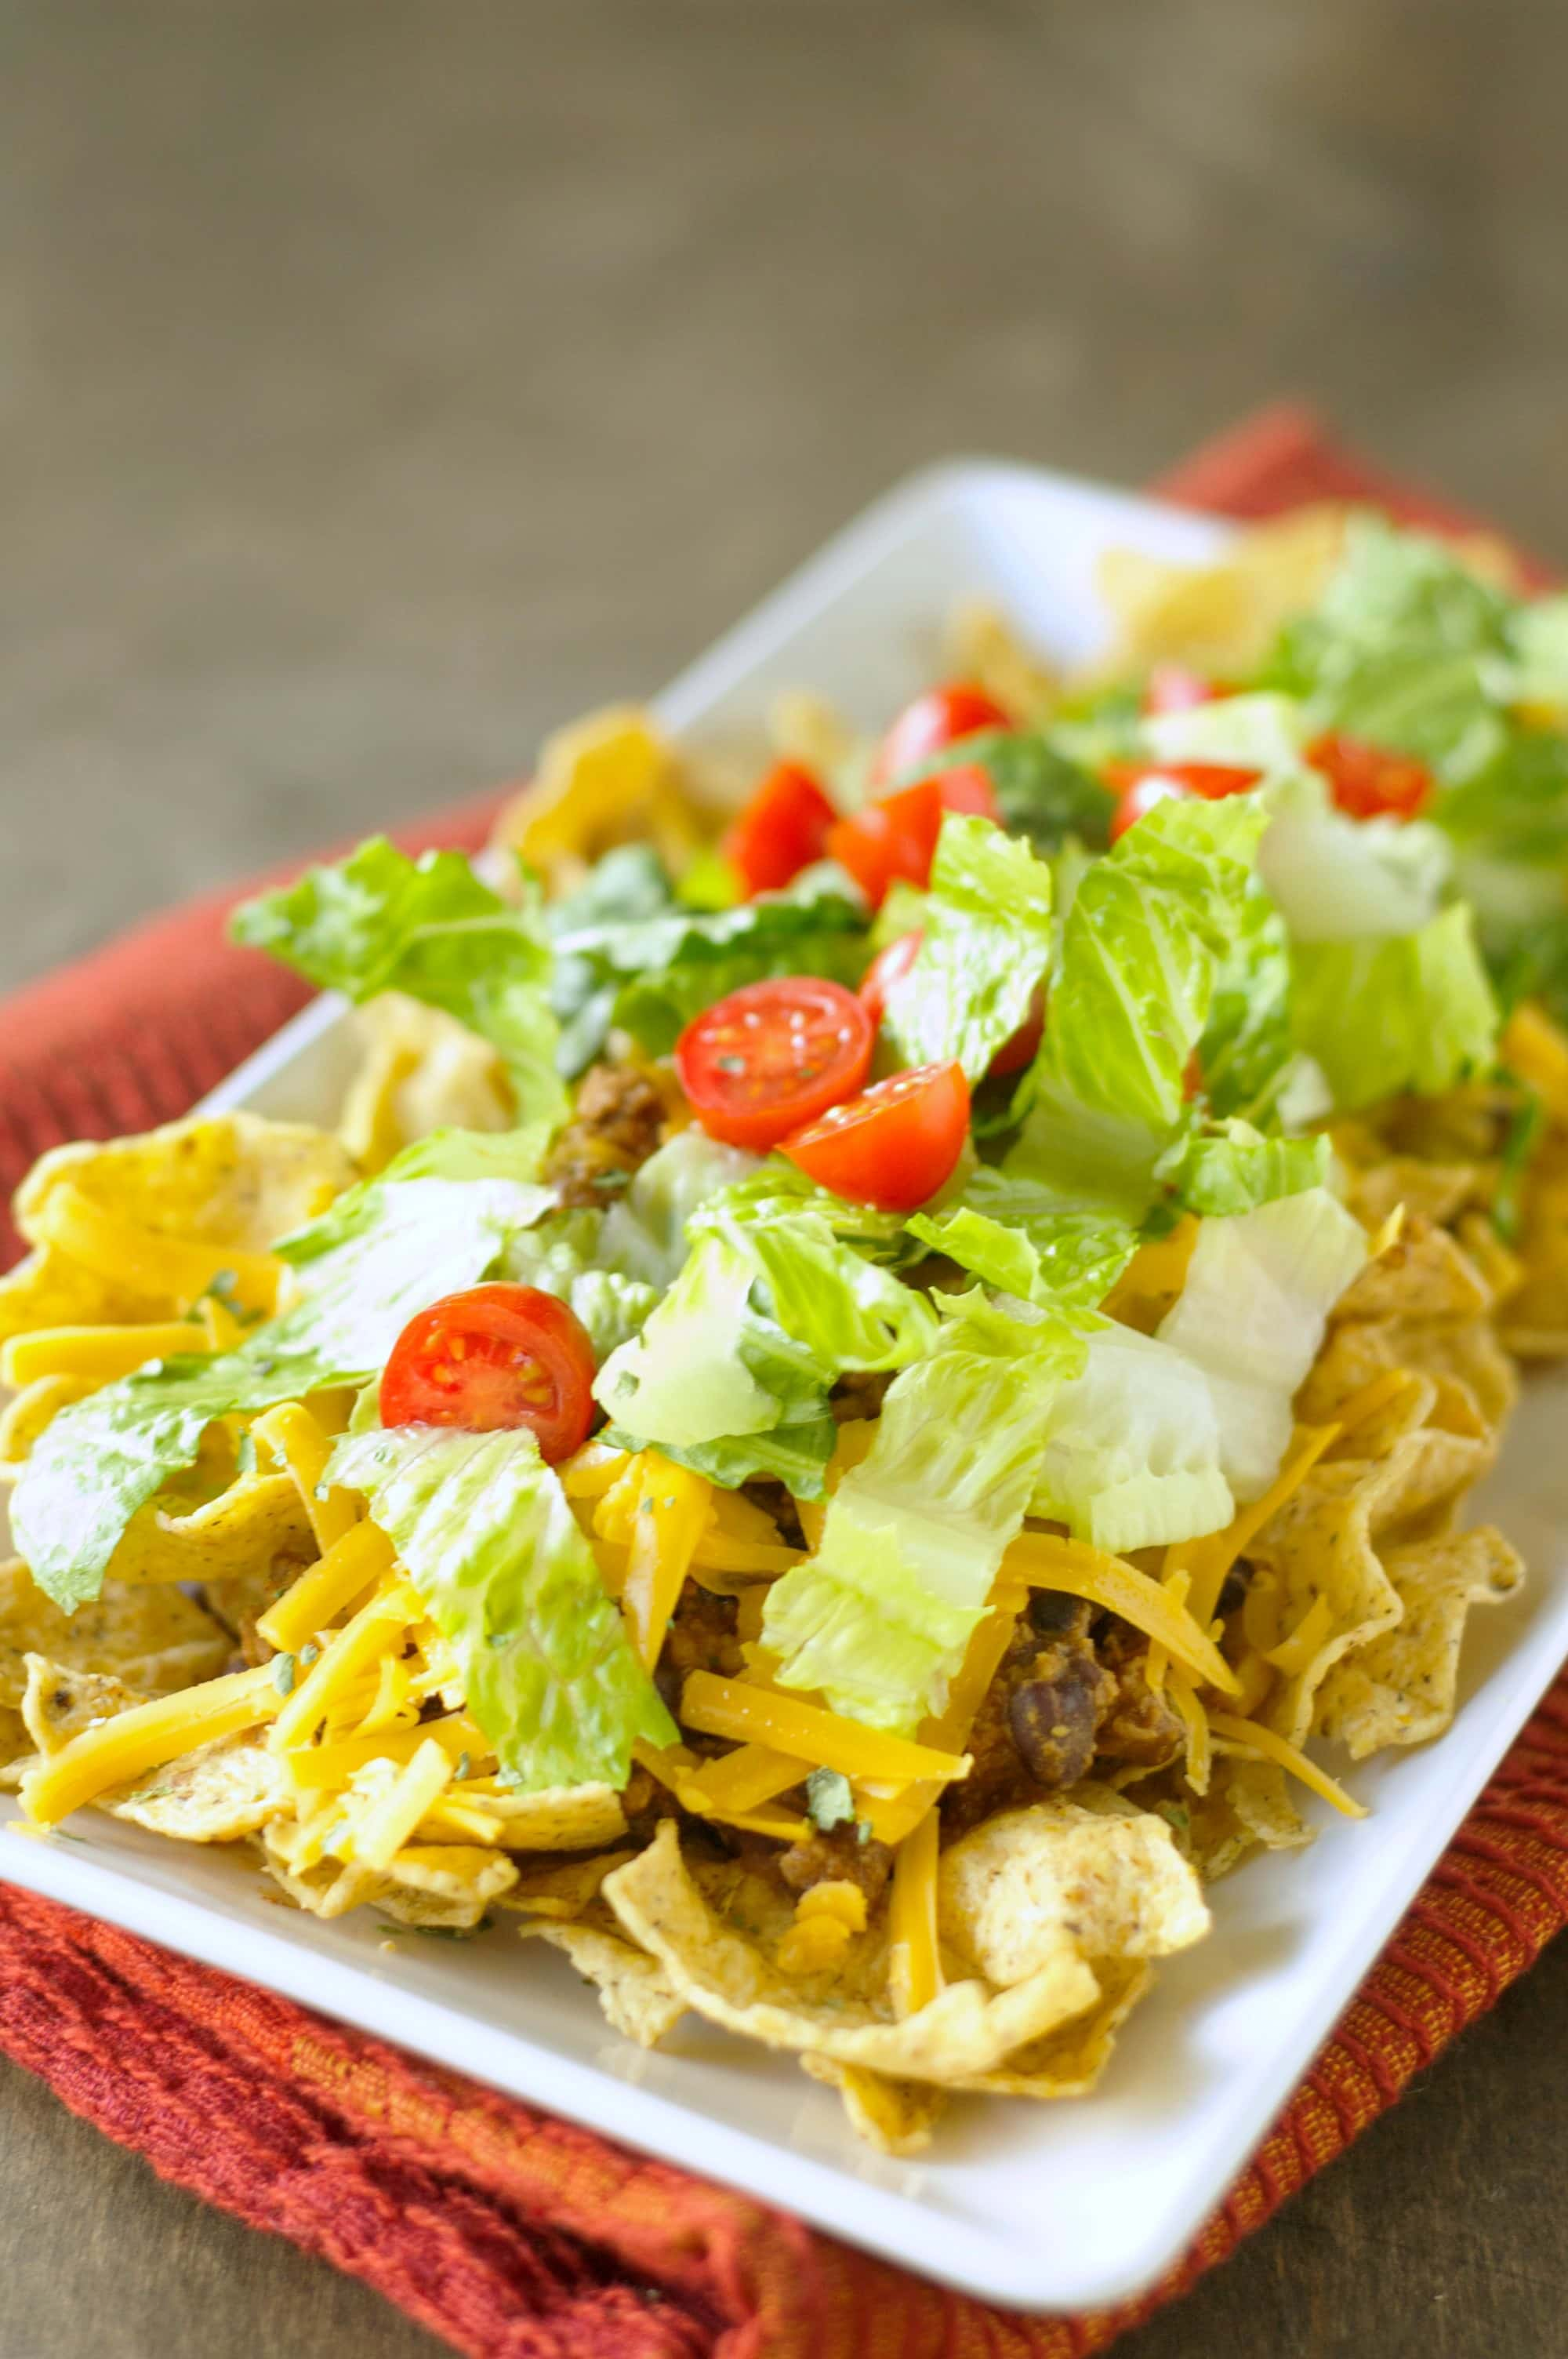 Slow Cooker Turkey Taco Salad